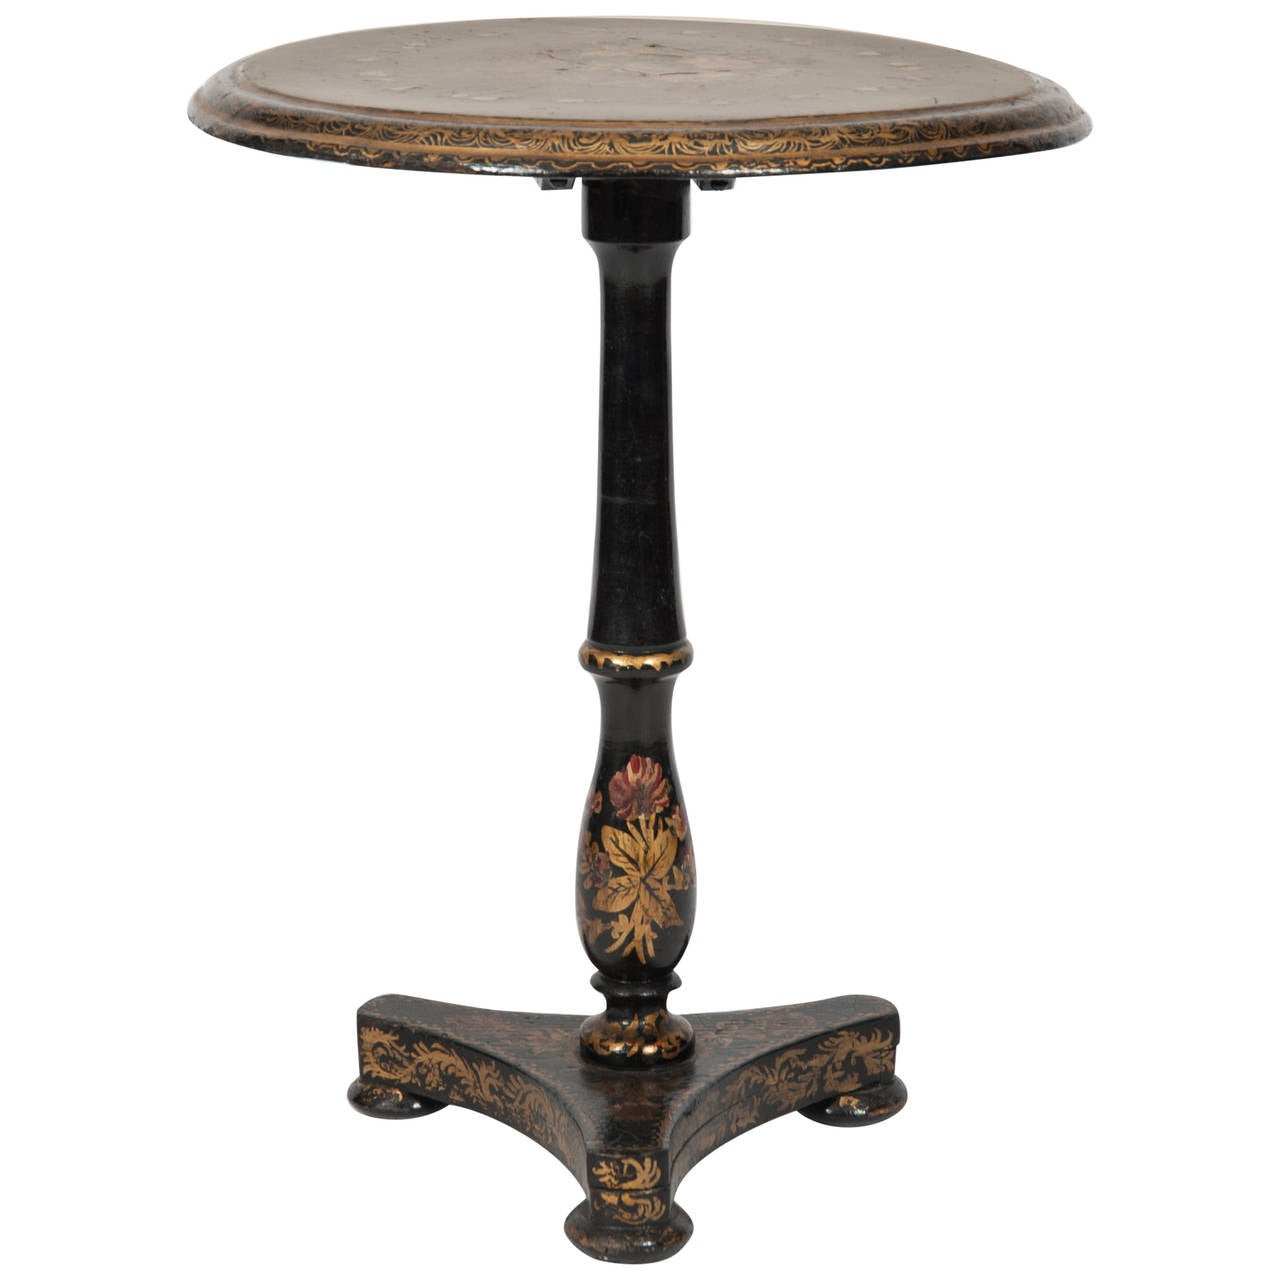 French circa 1870 papier m ch side table for sale at 1stdibs - Archives departementales 33 tables decennales ...